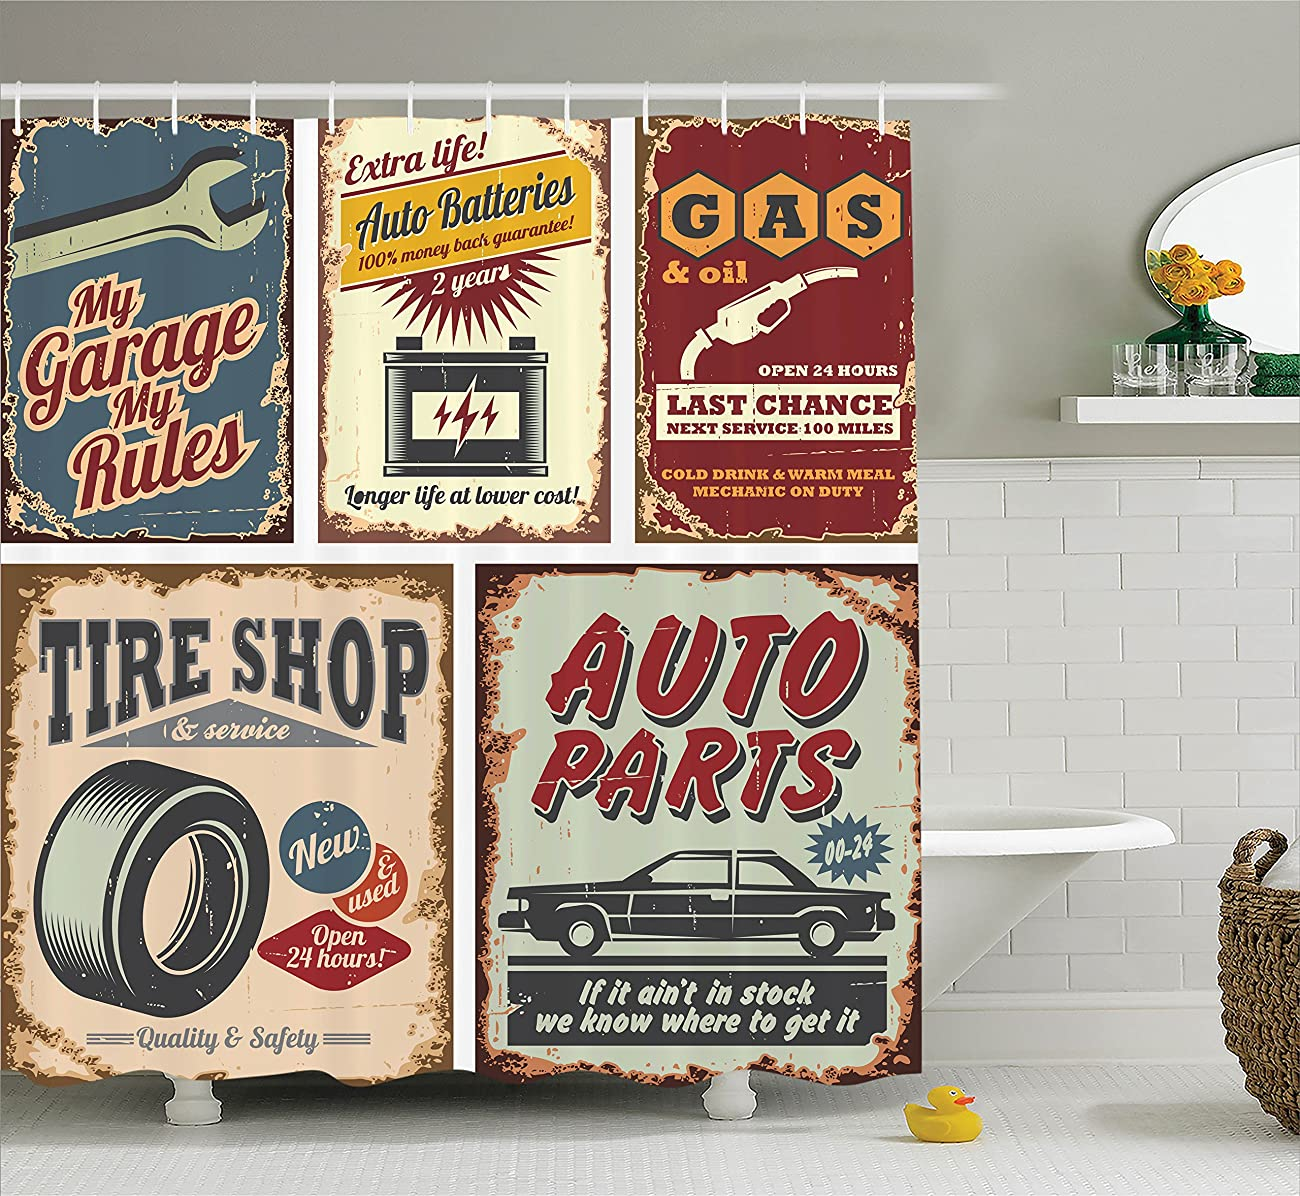 Ambesonne 1950s Decor Collection, Vintage Car Metal Signs Automobile Advertising Repair Vehicle Garage Classics Servicing Image, Polyester Fabric Bathroom Shower Curtain Set, 75 Inches Long, Burgundy 0